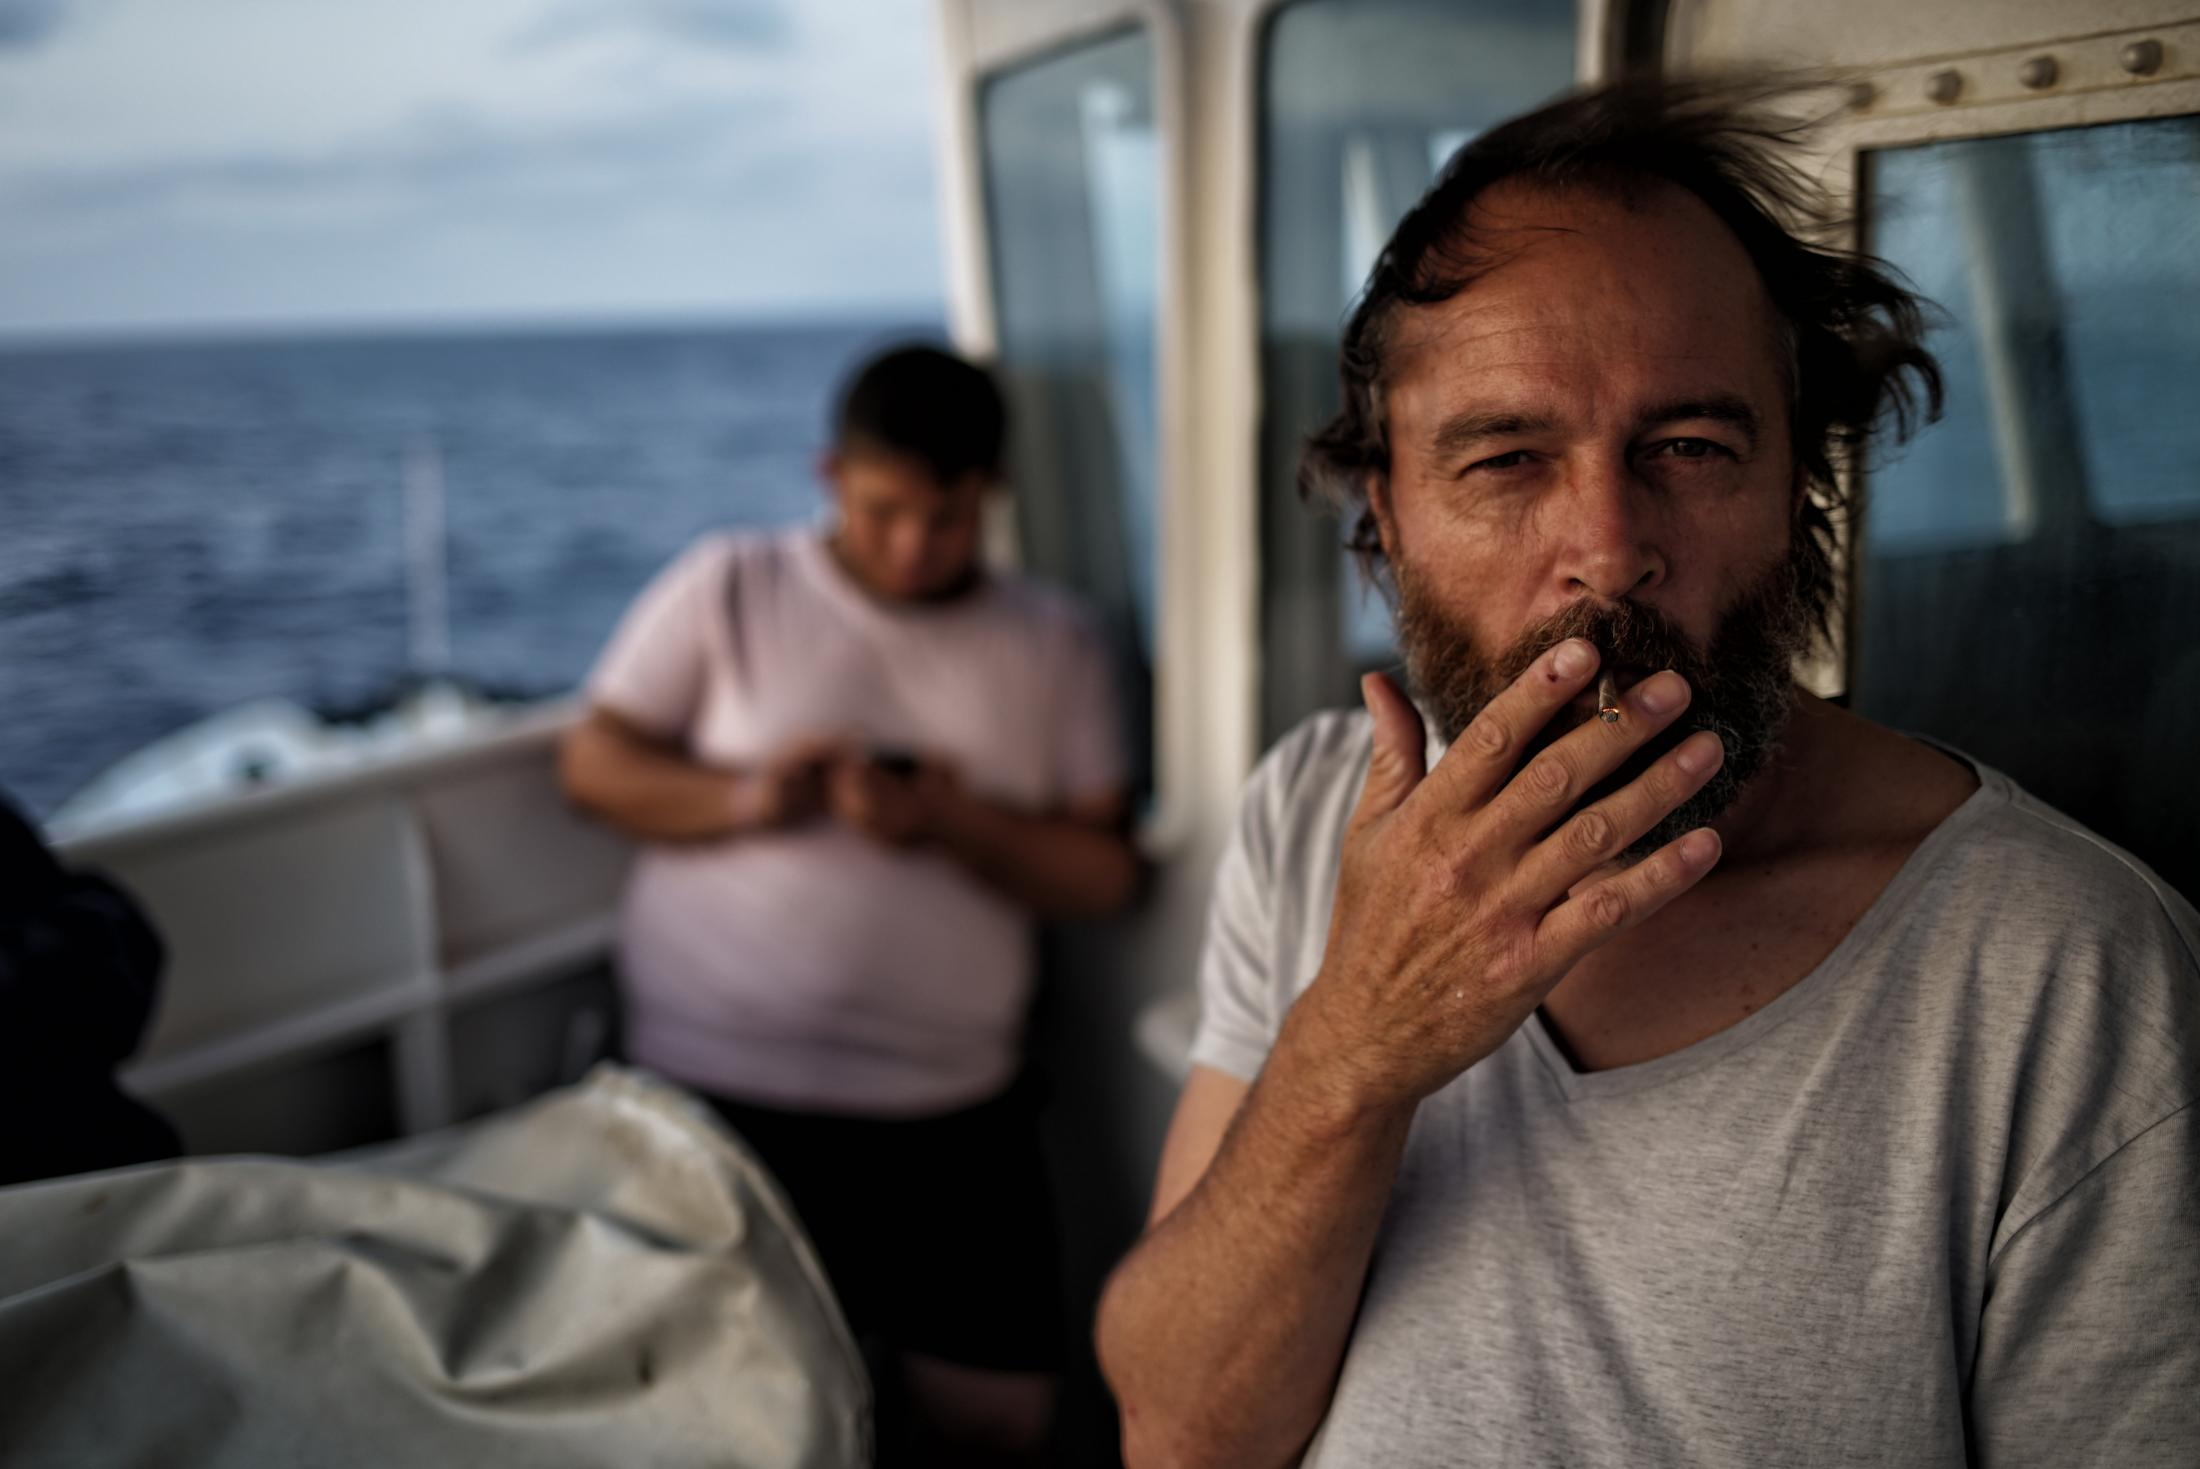 A crew member onboard the 'Aquarius' vessel smokes a cigarette outside on the deck while waiting for a rescue at sea on Monday June 20, 2016. The medical aid group Medecins Sans Frontieres (MSF) and the rescue group SOS Mediterranee cooperate on the vessel to rescue migrants on their way from North Africa to Europe. (AP Photo/Bram Janssen)